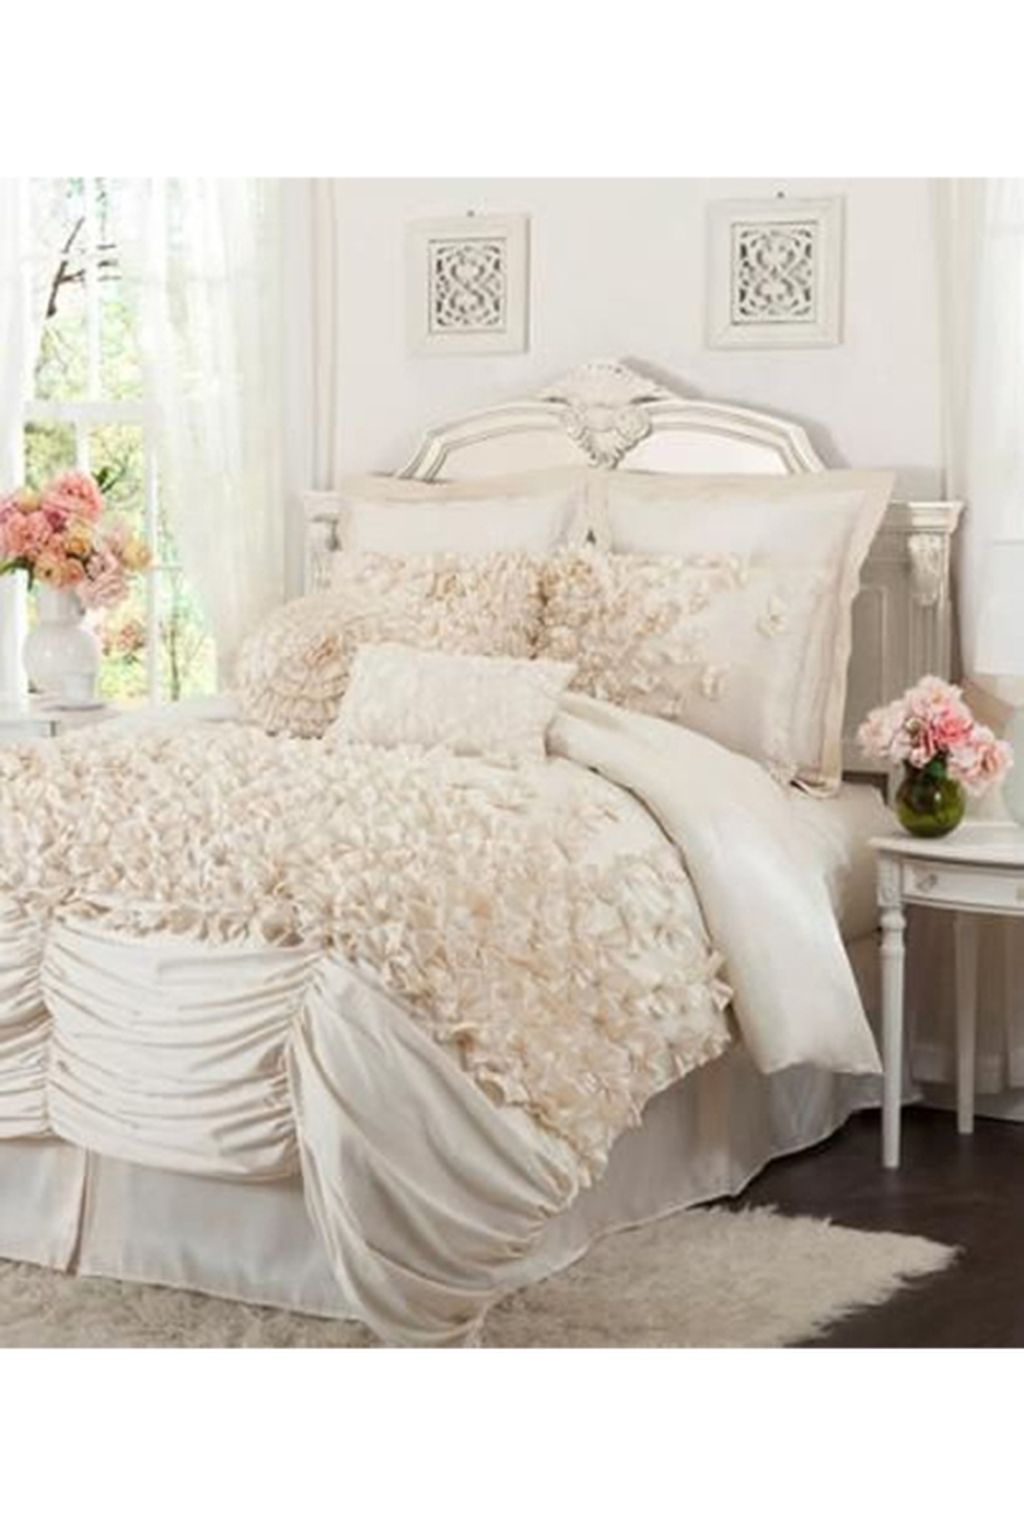 Lovely Winter Bedroom Design Ideas With Flower Themes To Try Asap 21